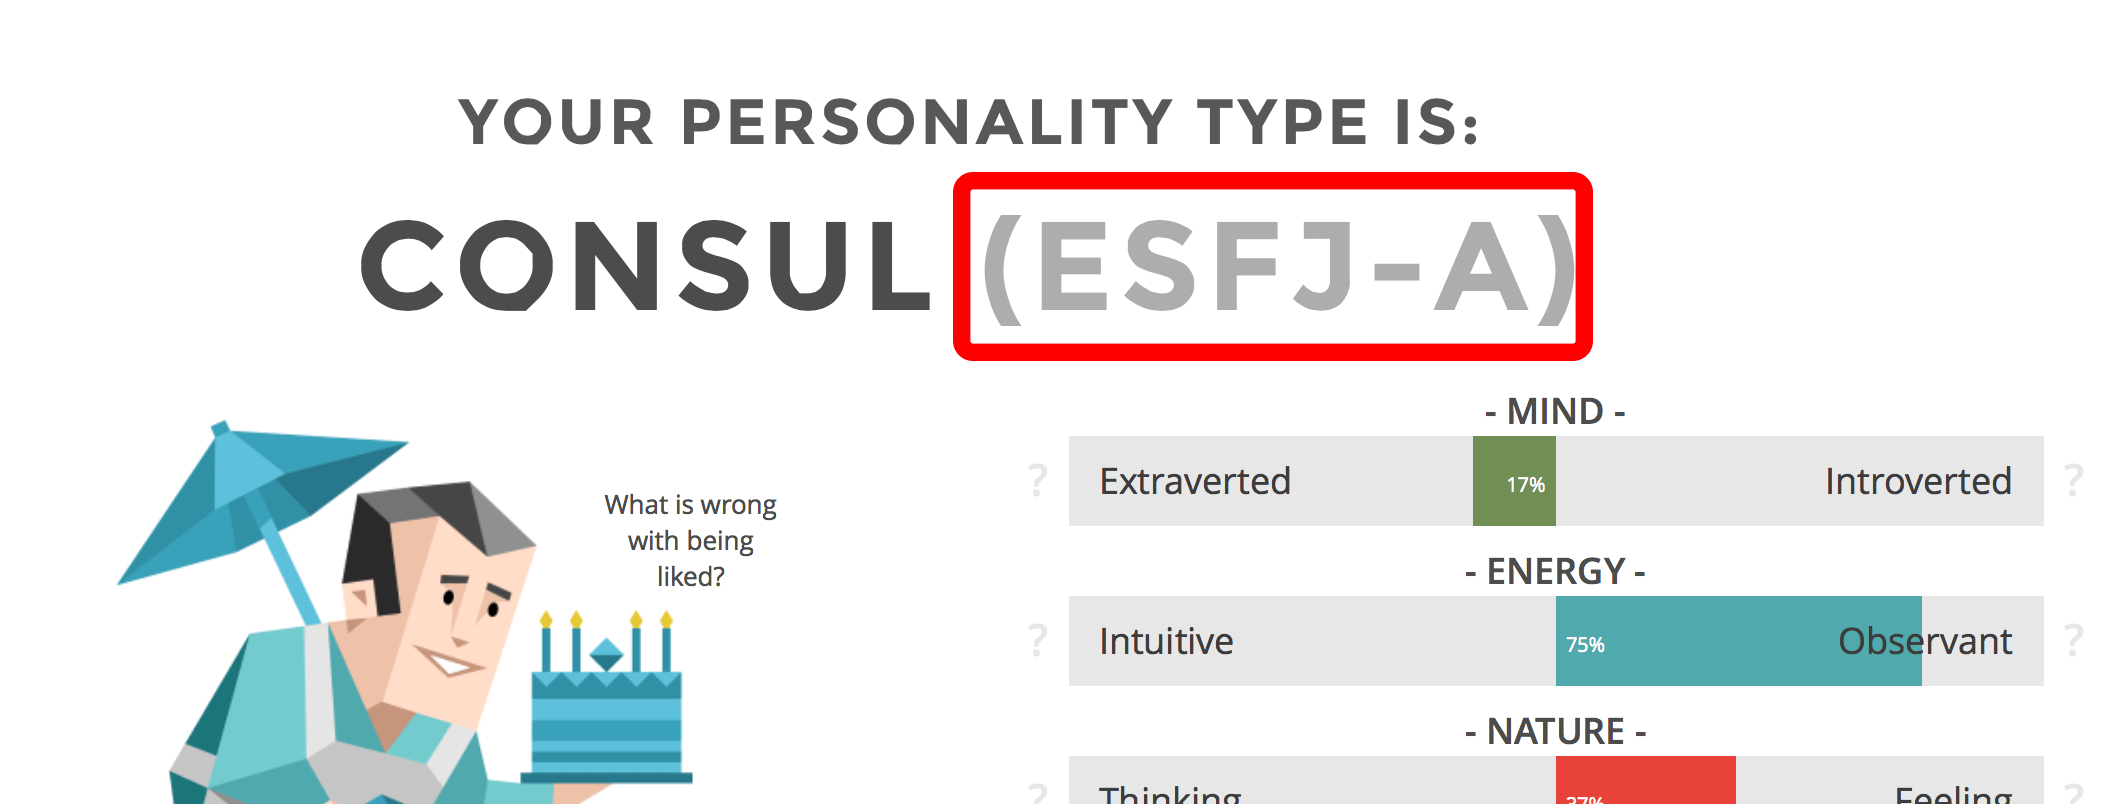 Personality Type Preview